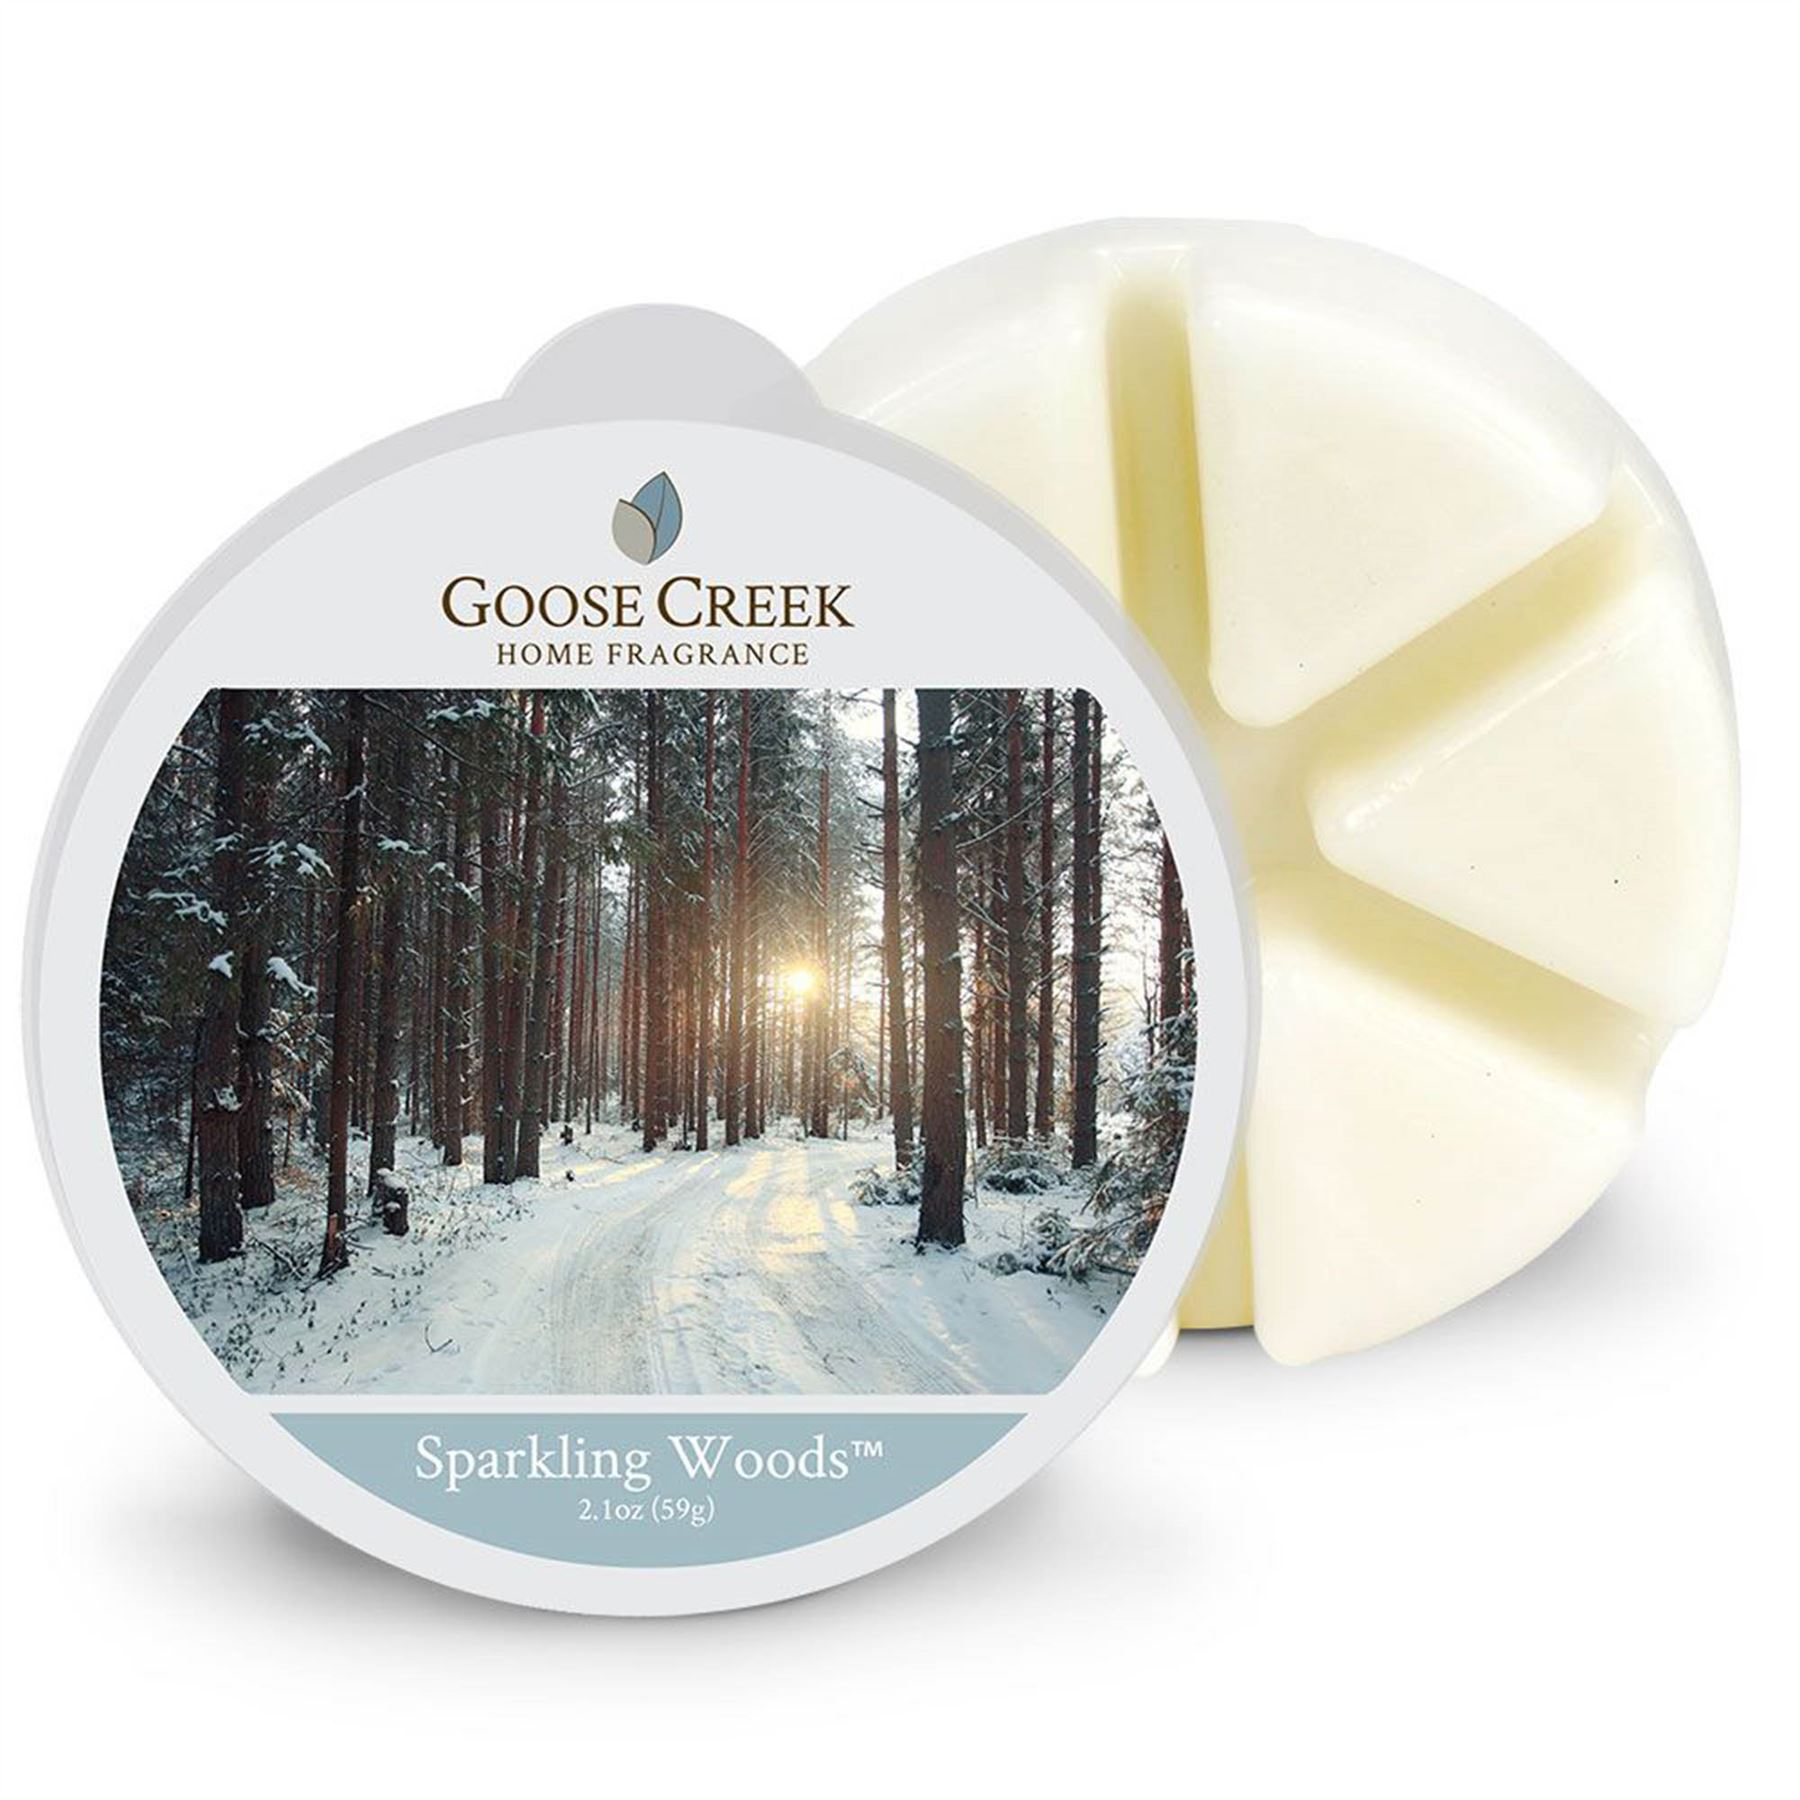 Goose-Creek-Scented-Wax-Melts-Breakable-Up-to-80-Hrs-Burn-Time-90-Fragrances-L1